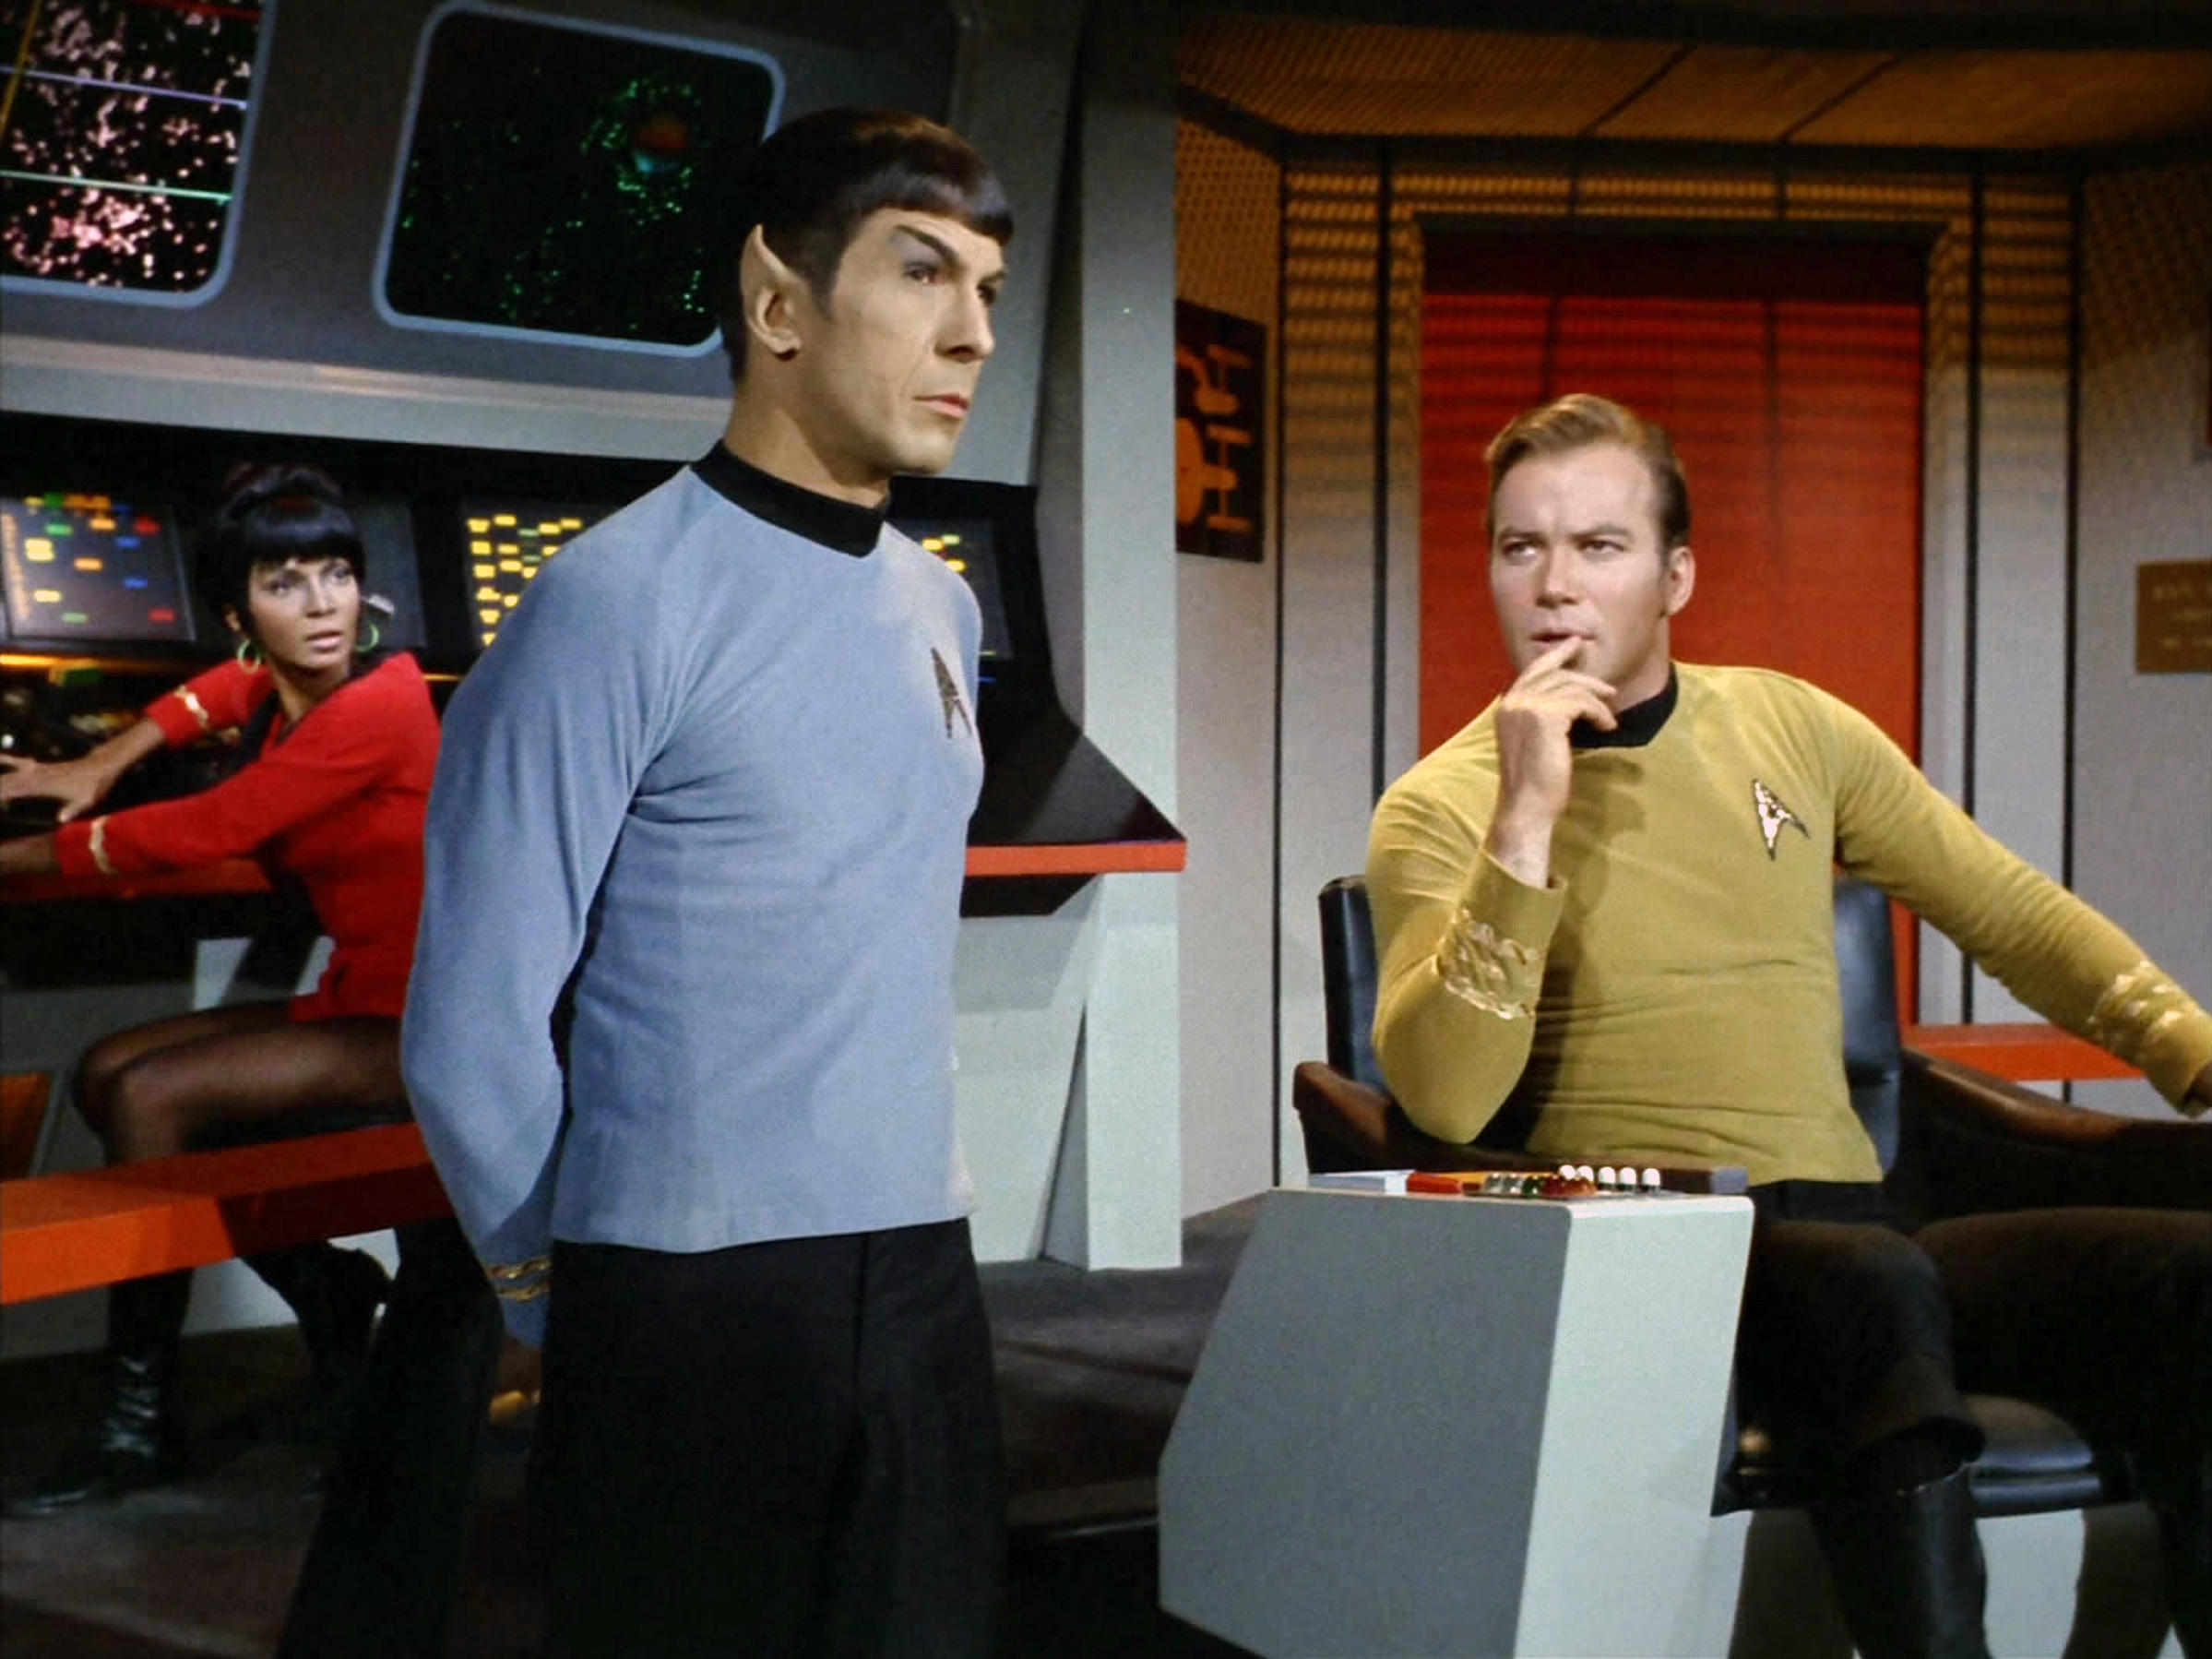 william shatner is going to space next week for real wjsu